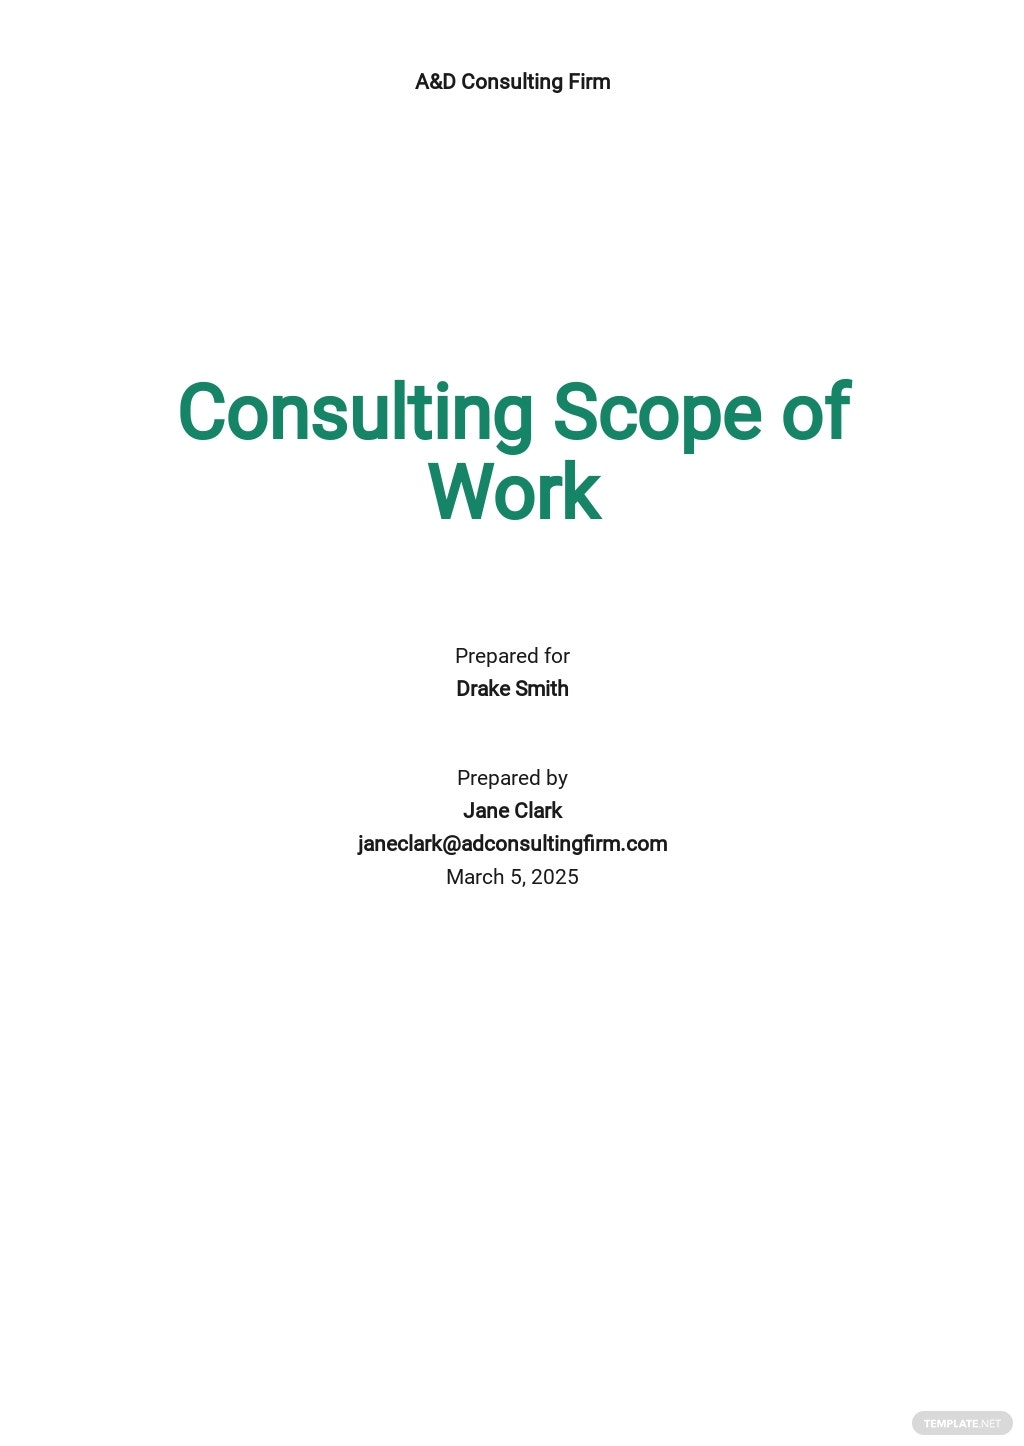 Consulting Scope of Work Template